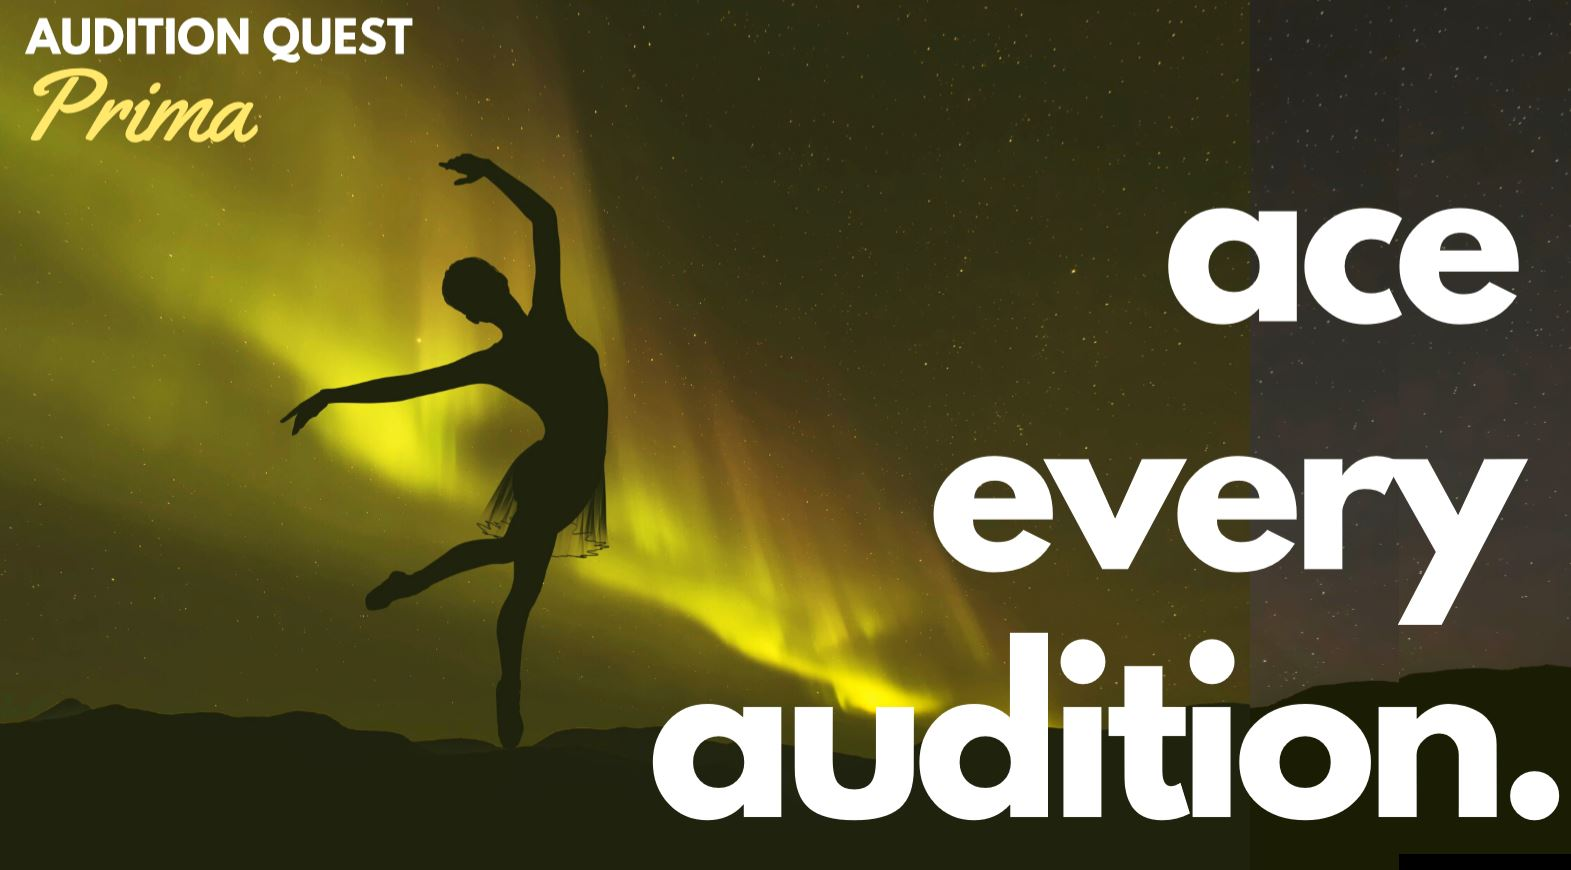 Silhouette female dancer on yellow northern lights background.  Text on image reads: Audition Quest Prima Ace every audition